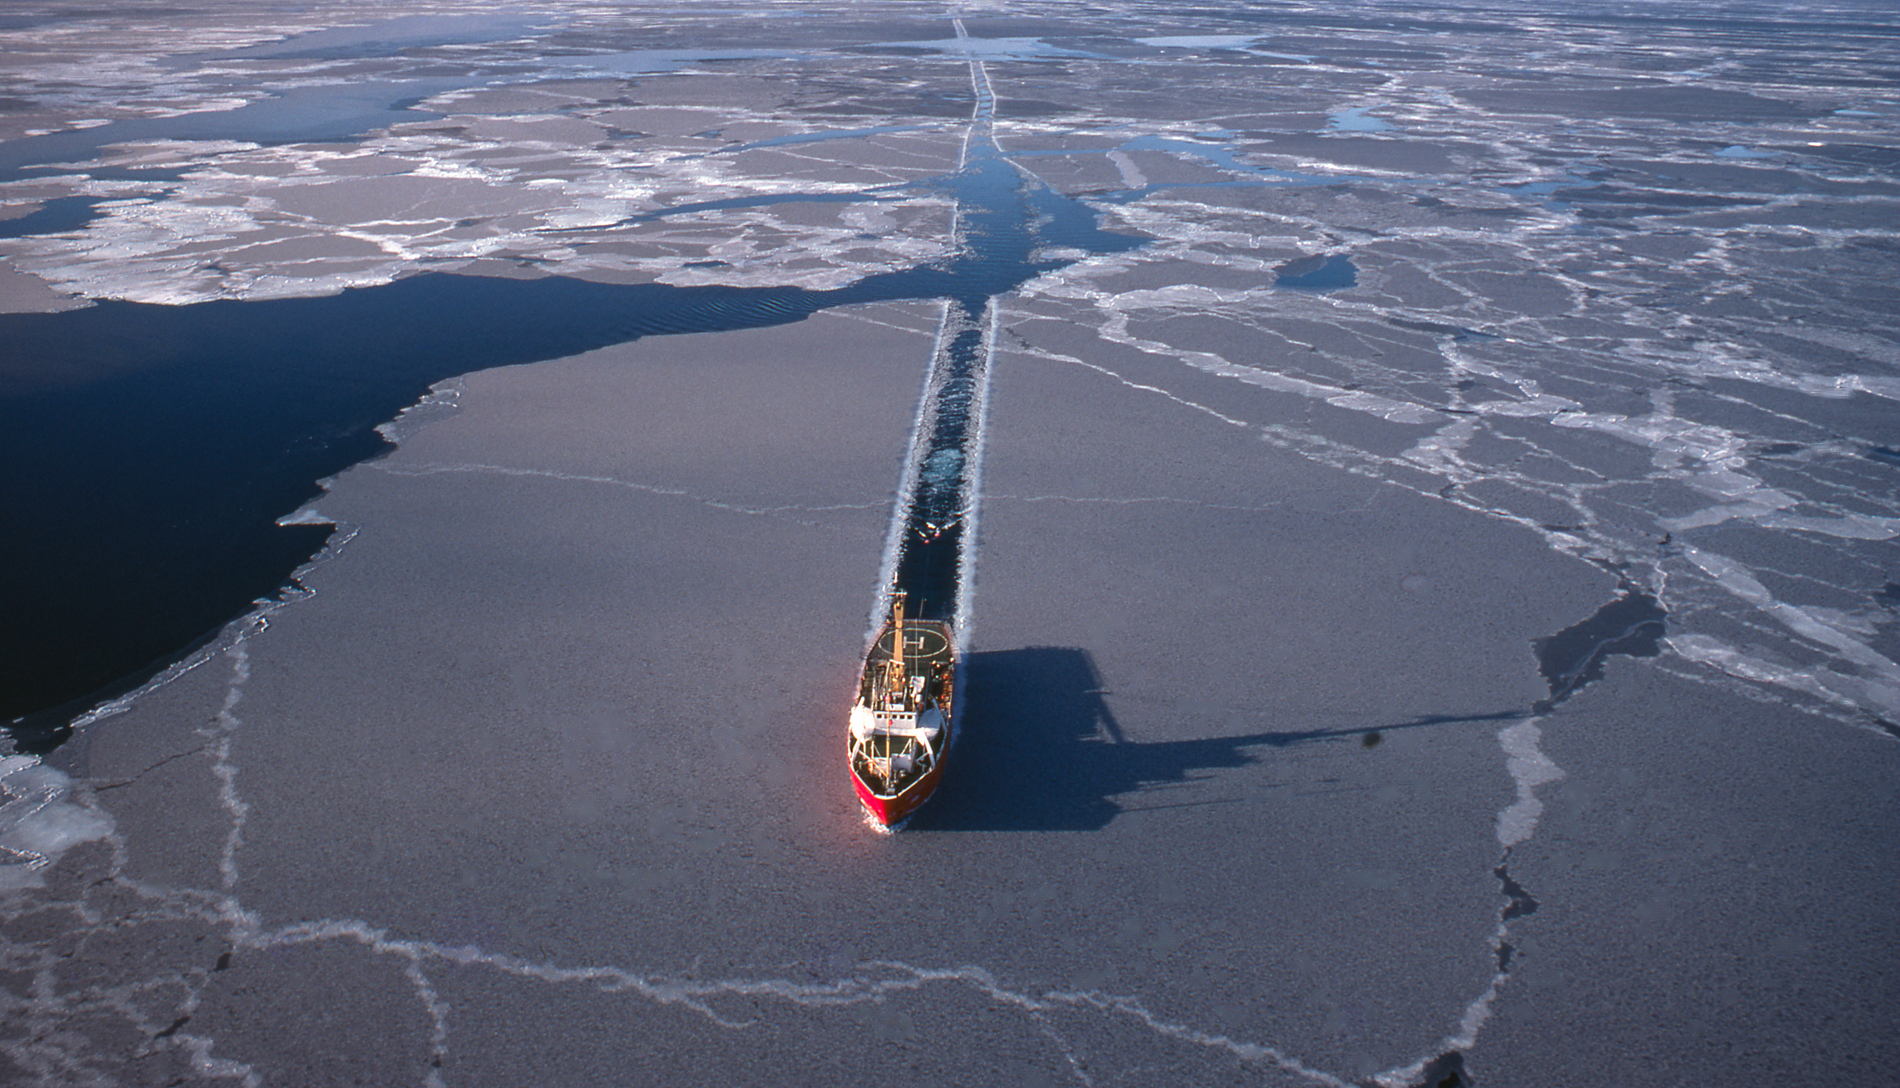 An icebreaker plows through Arctic waters. The U.S. has just two icebreakers compared to Russia's 41. Photograph by westphalia/Getty Images